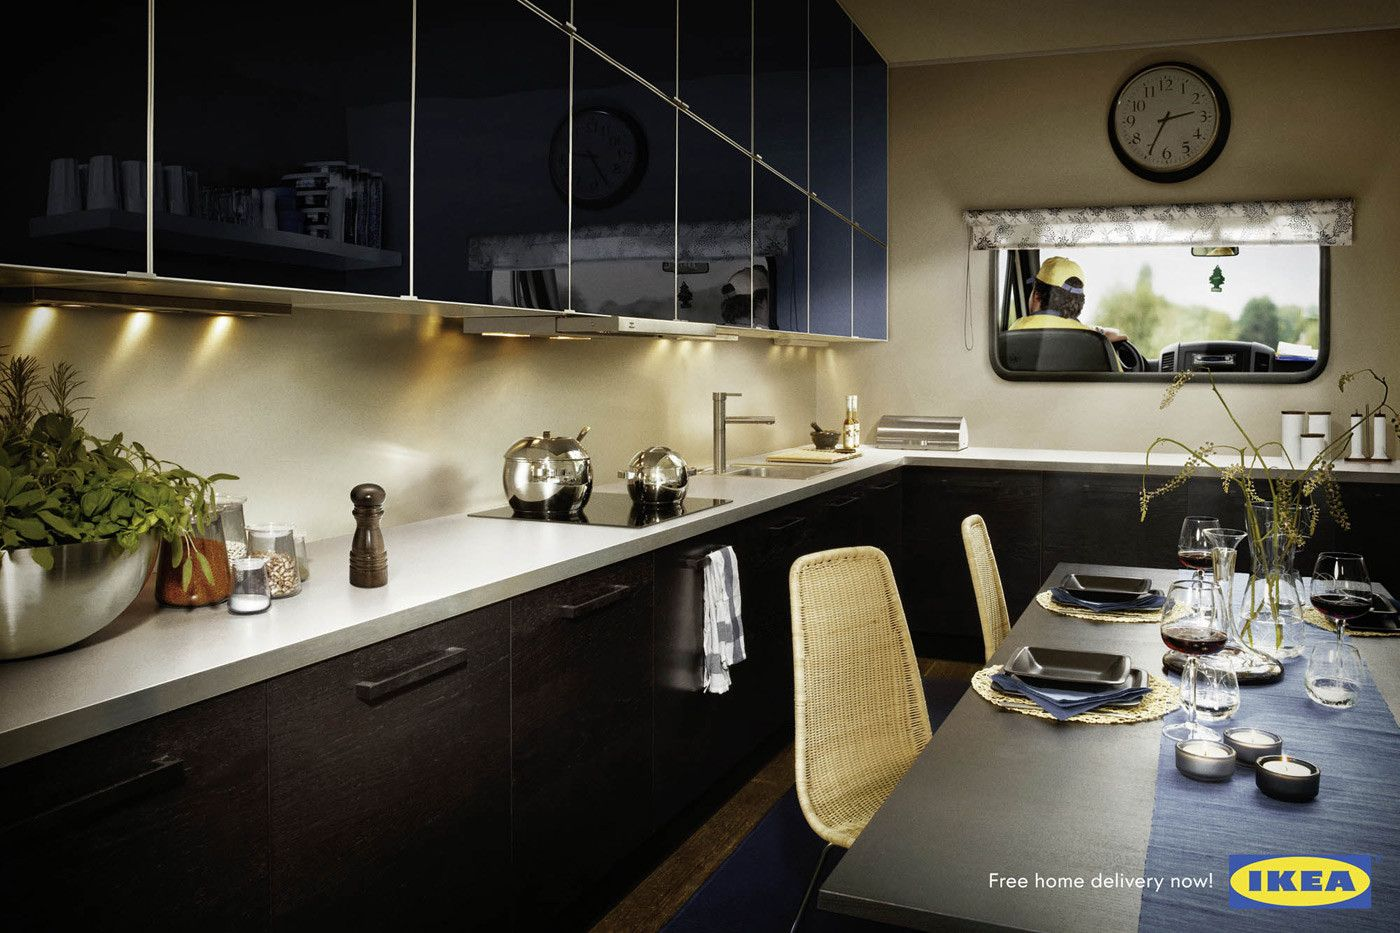 Ikea | Free Home Delivery | Concept Ads | Ikea kitchen ...